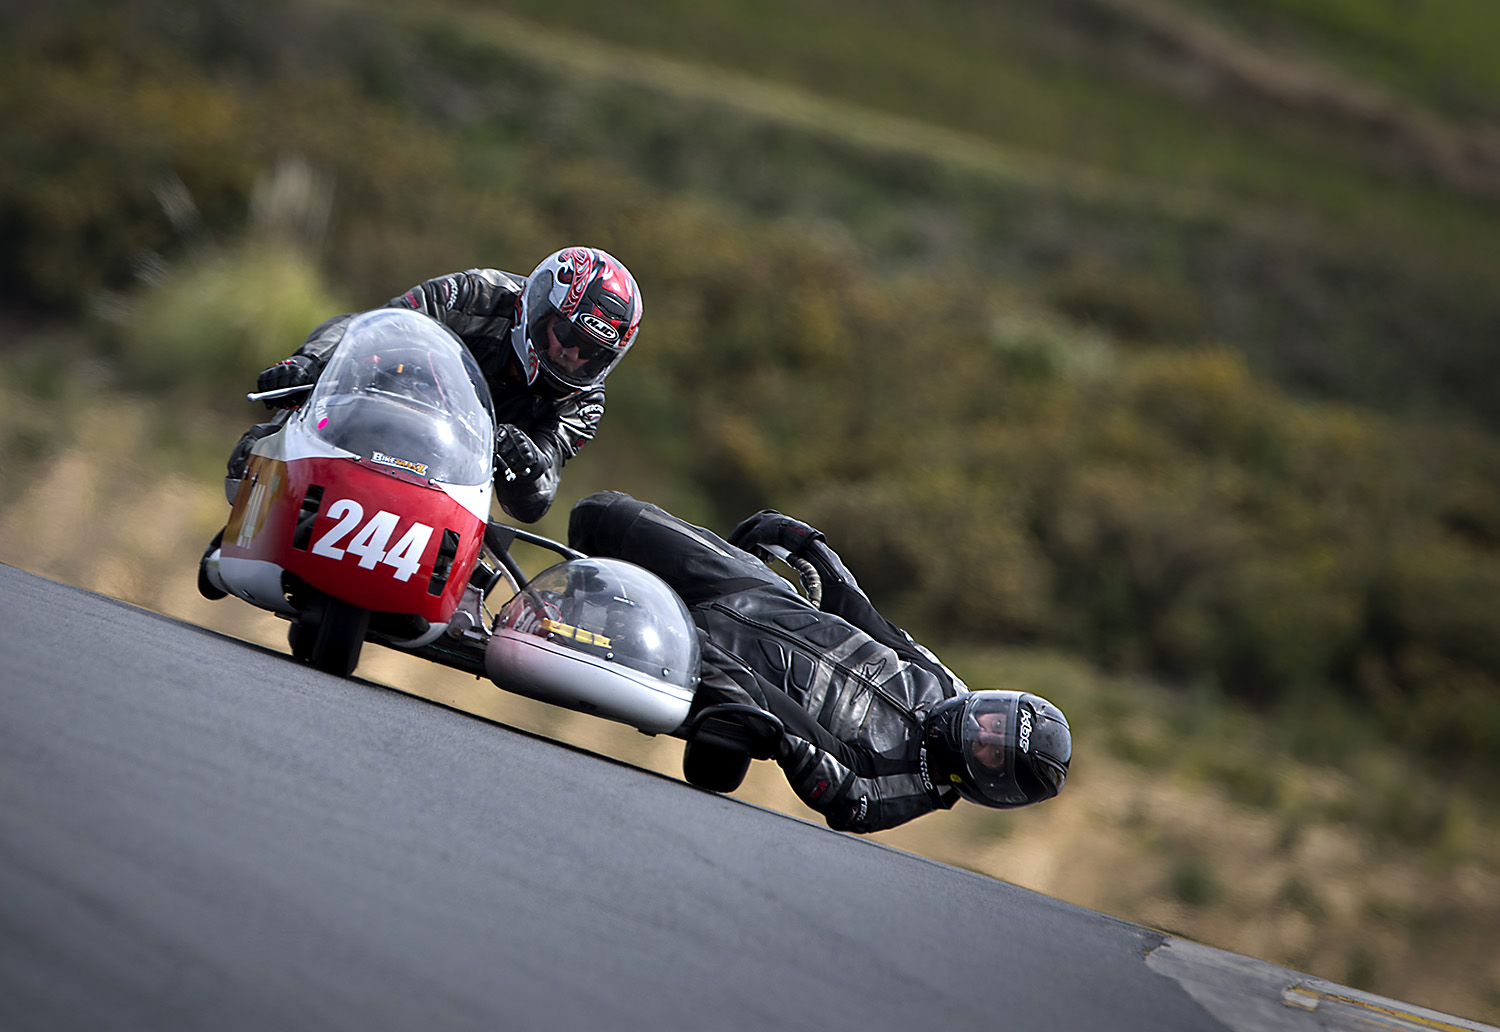 Barry Sheen Trans Tasman Challenge - classic motorcycle racing